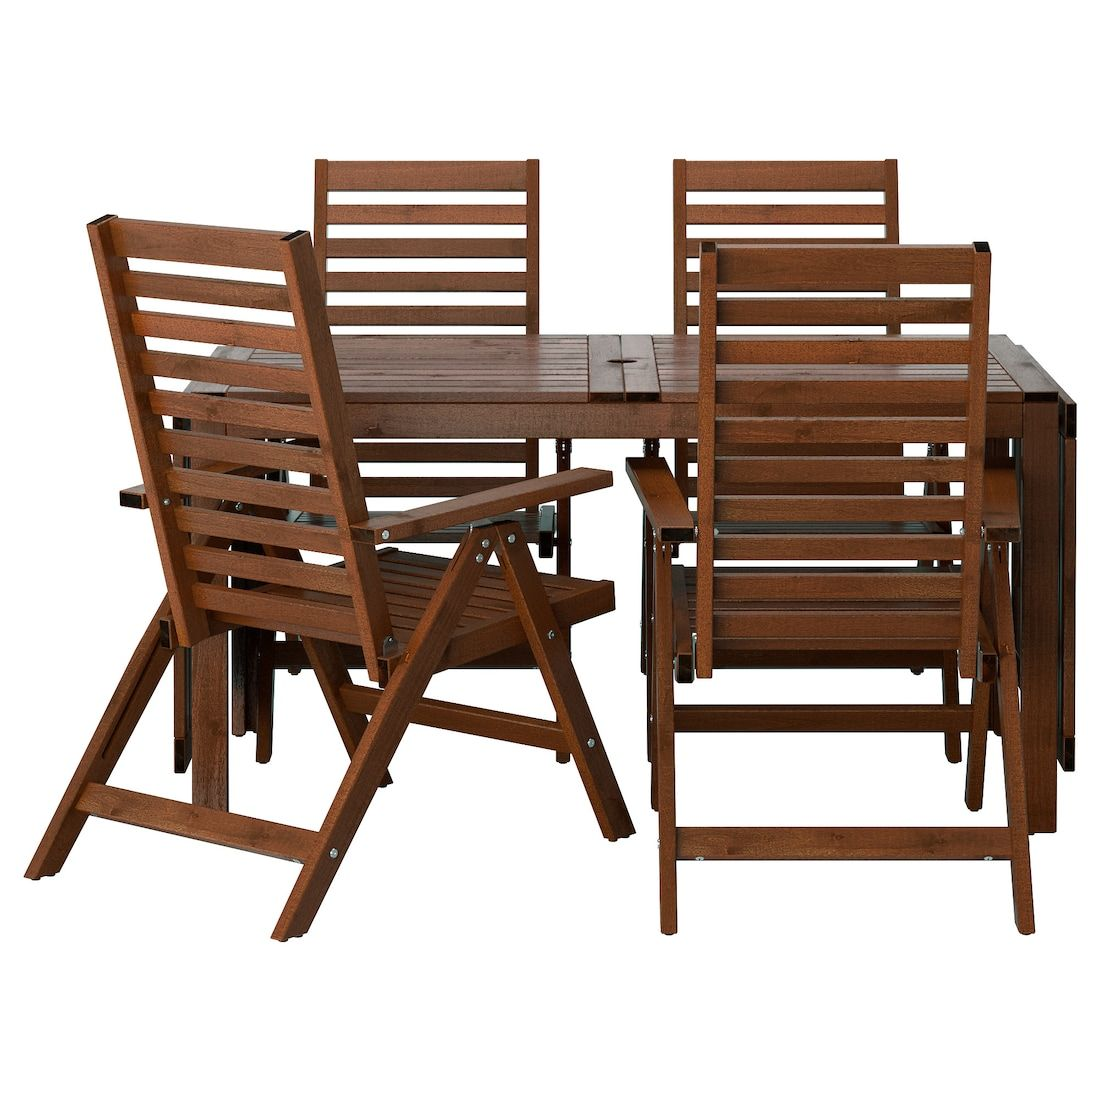 ÄPPLARÖ Table + 4 reclining chairs, outdoor, brown stained